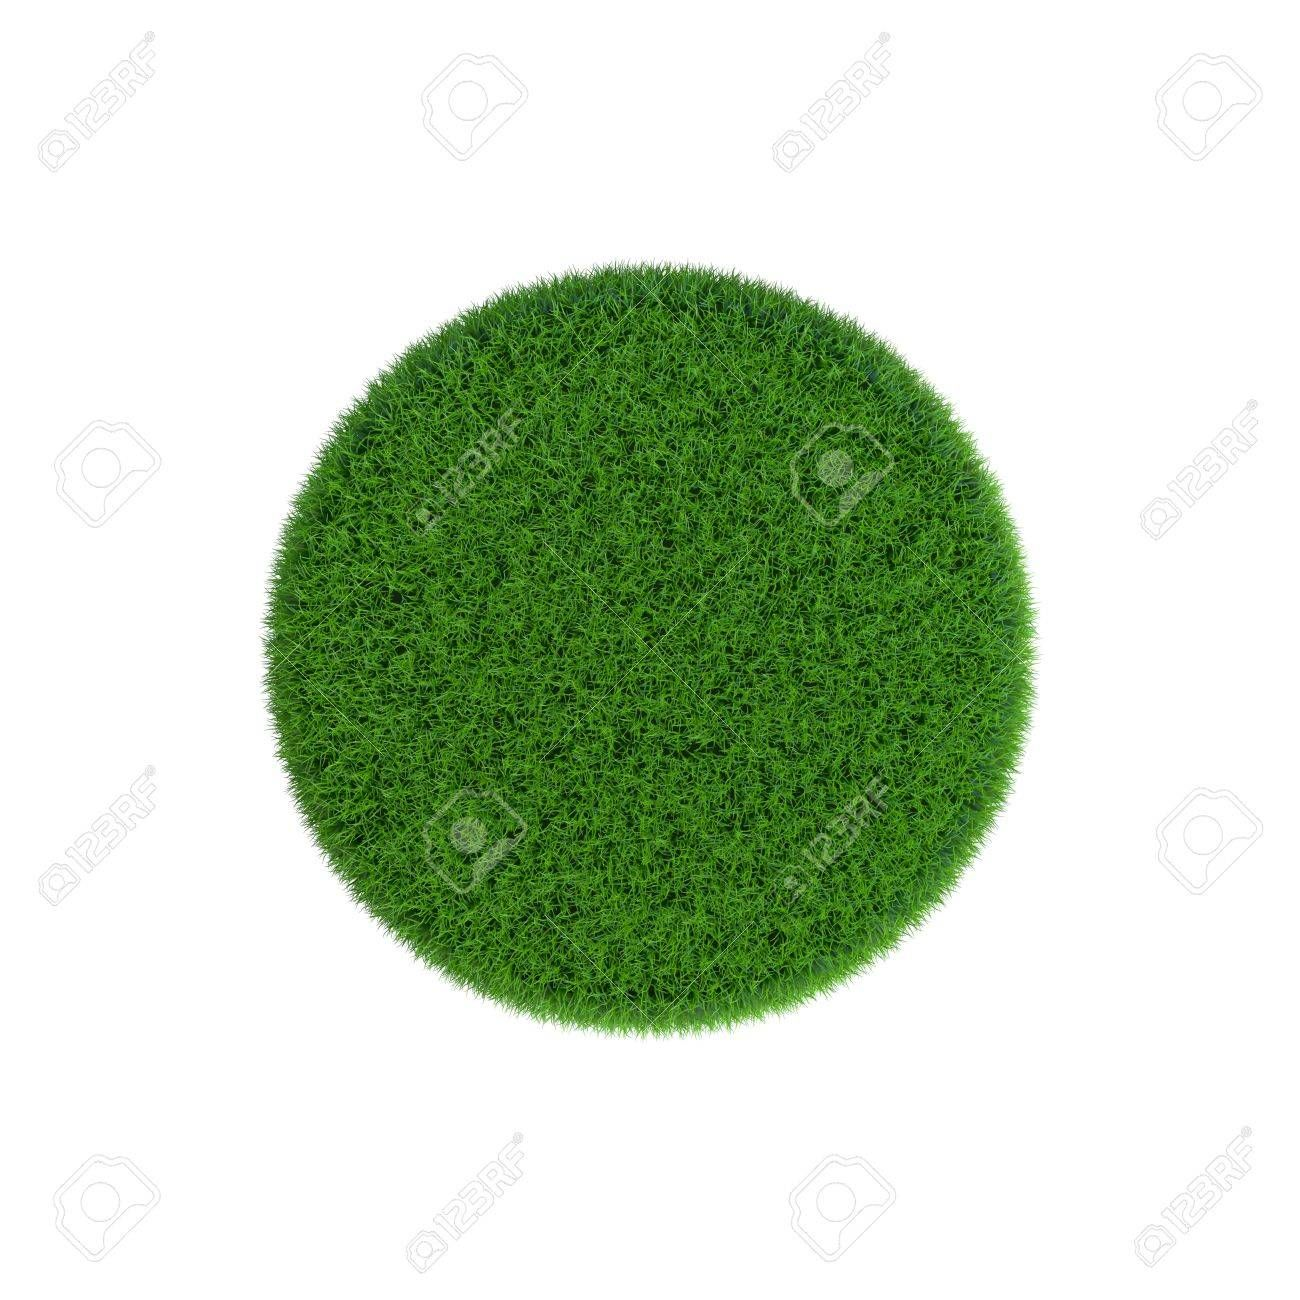 Patch of grass in form of circle. Isolated on white background.3D rendering illustration. , #sponsored, #form, #circle, #Patch, #grass, #Isolated